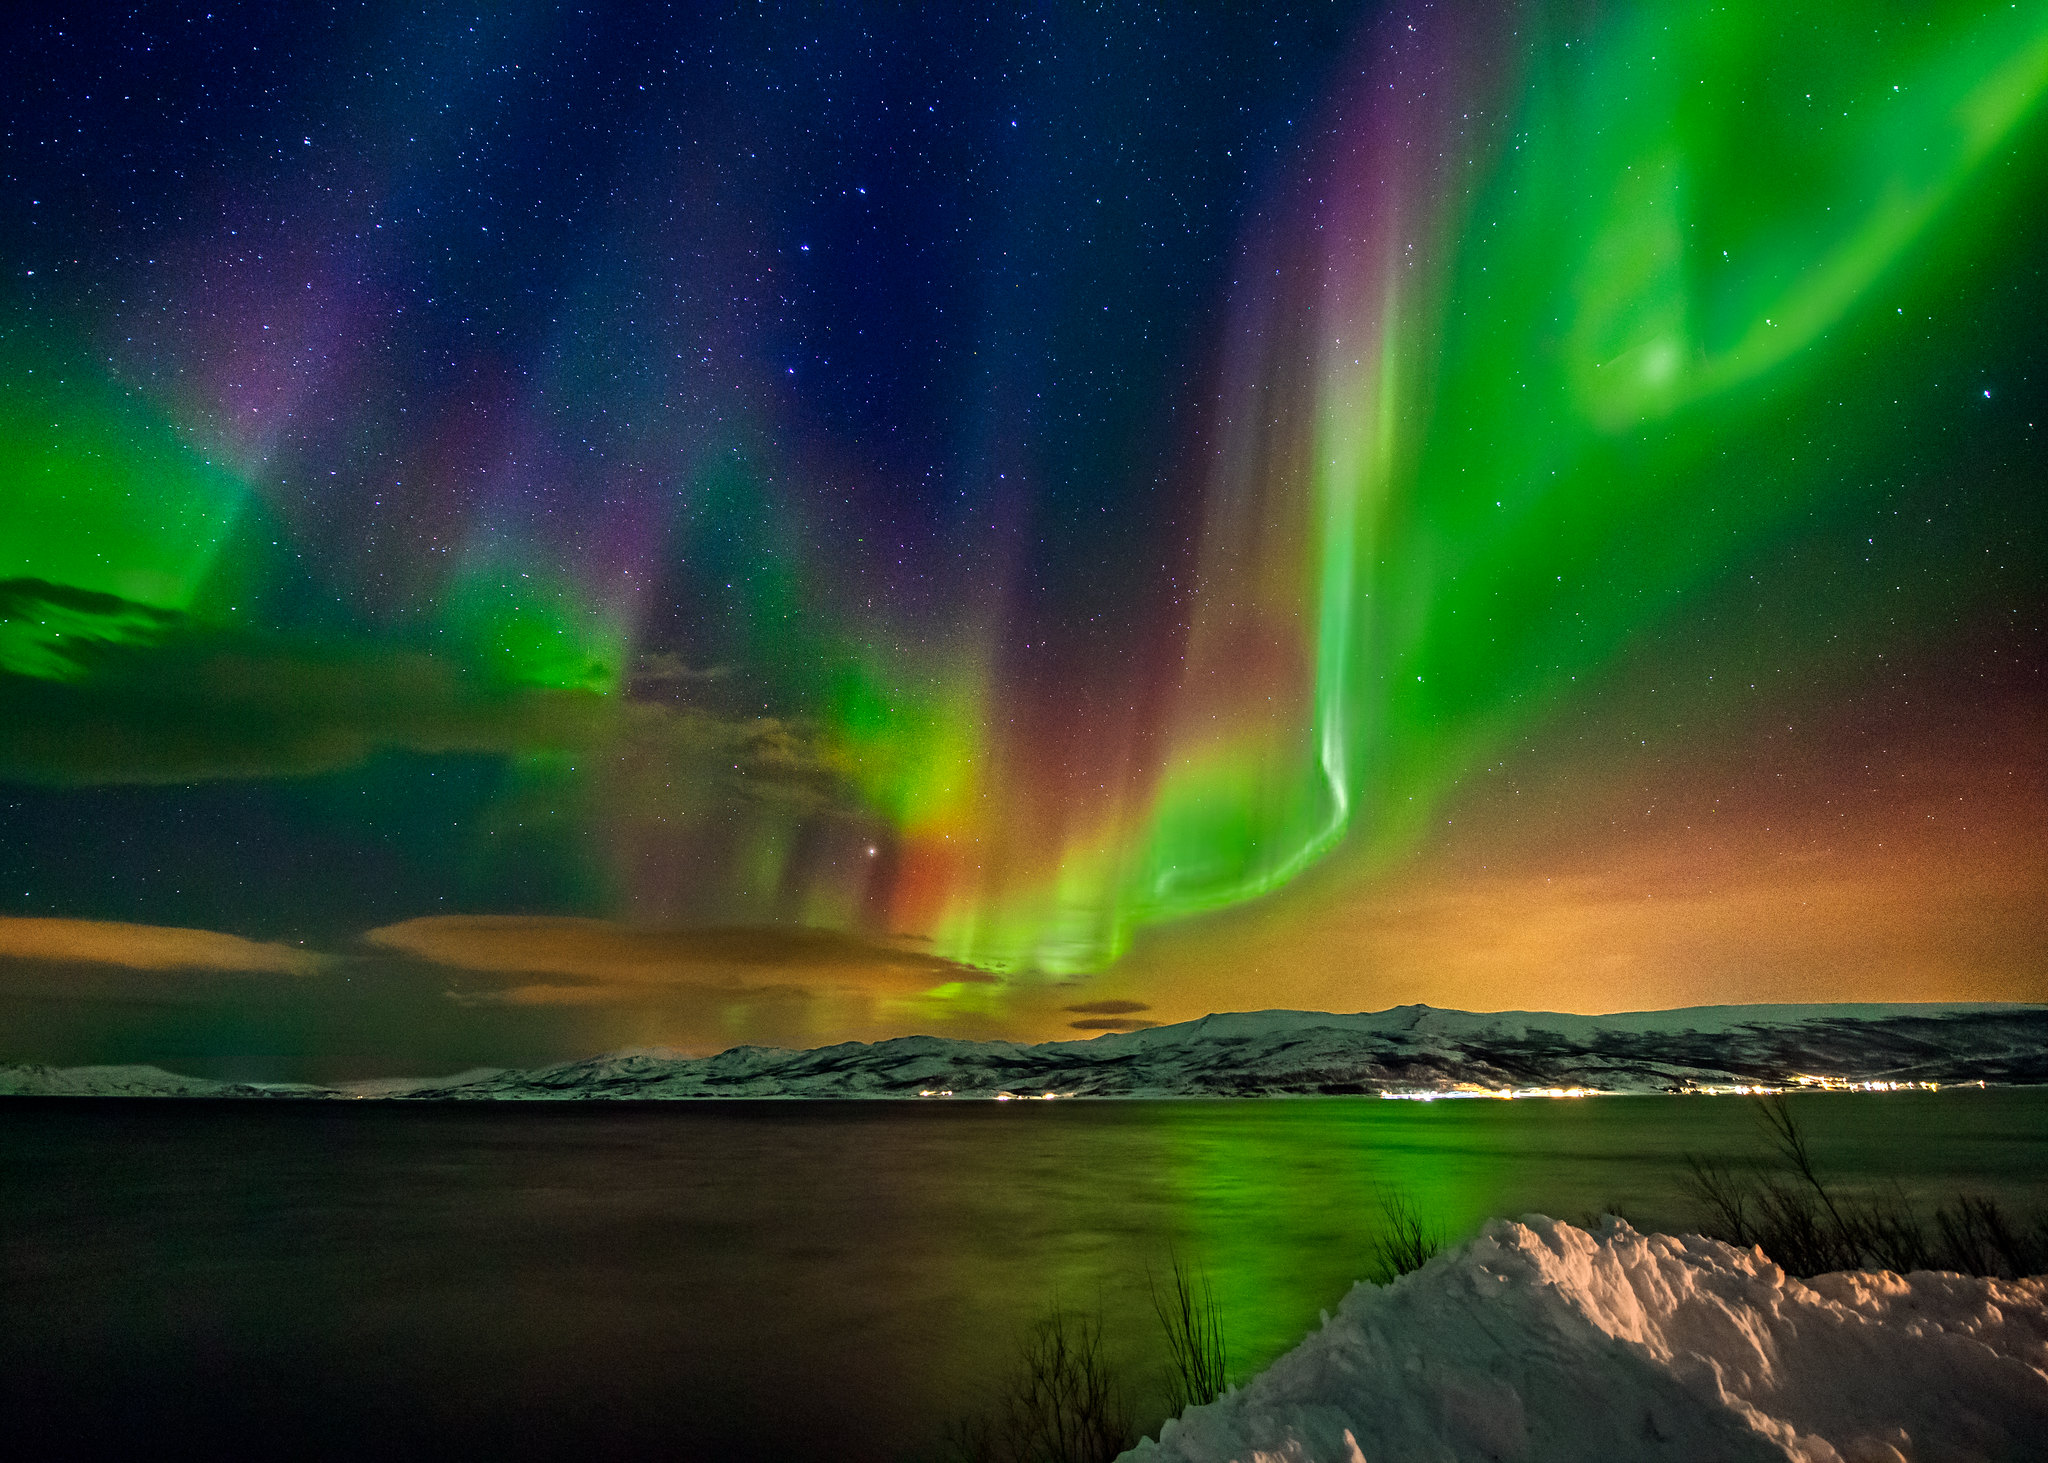 3d Parallax Weather Live Wallpaper Multi Colored Aurora Borealis And A Starry Night Sky Over